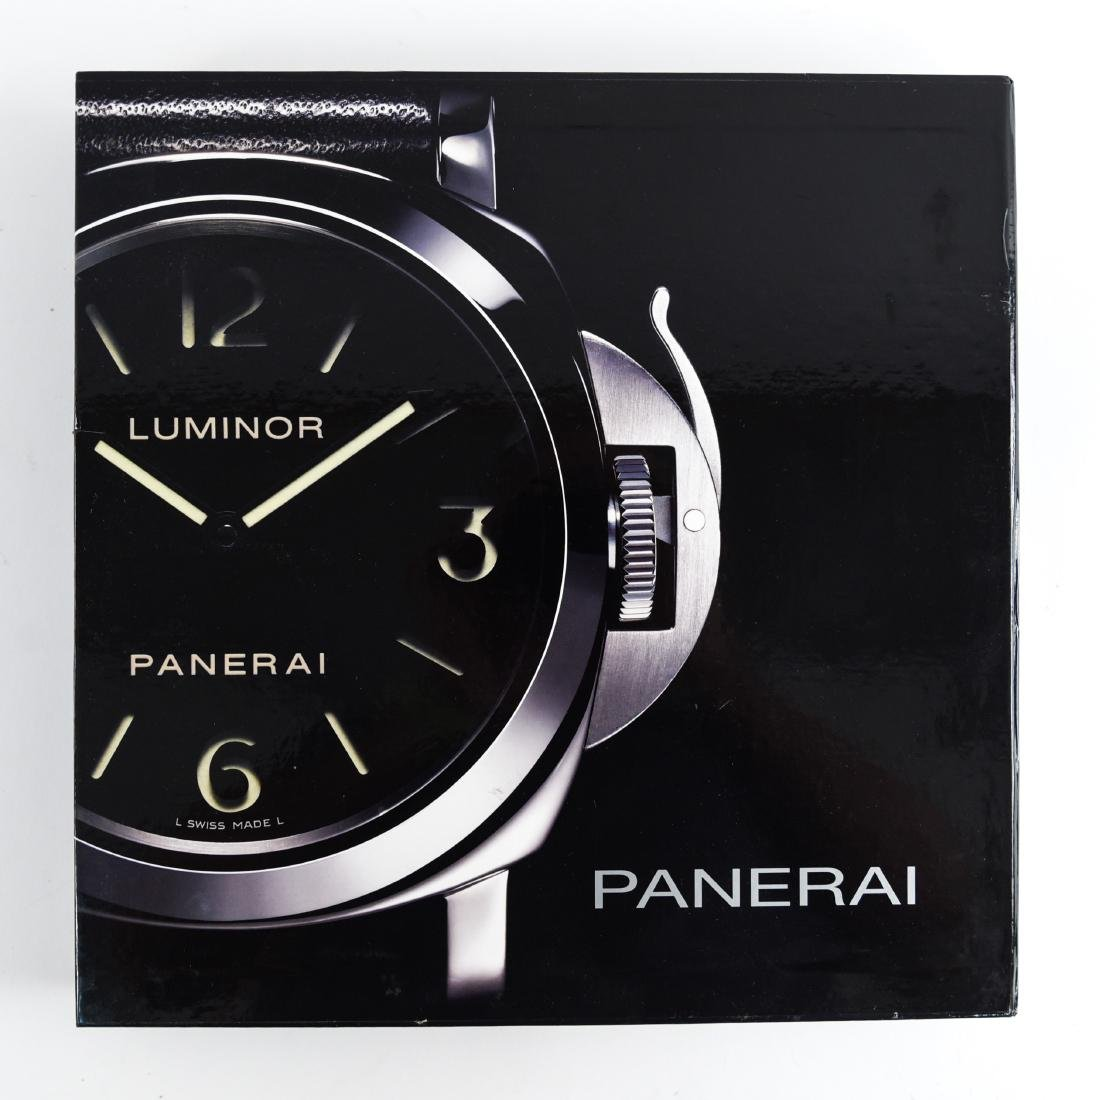 PANERAI COFFEE TABLE BOOK